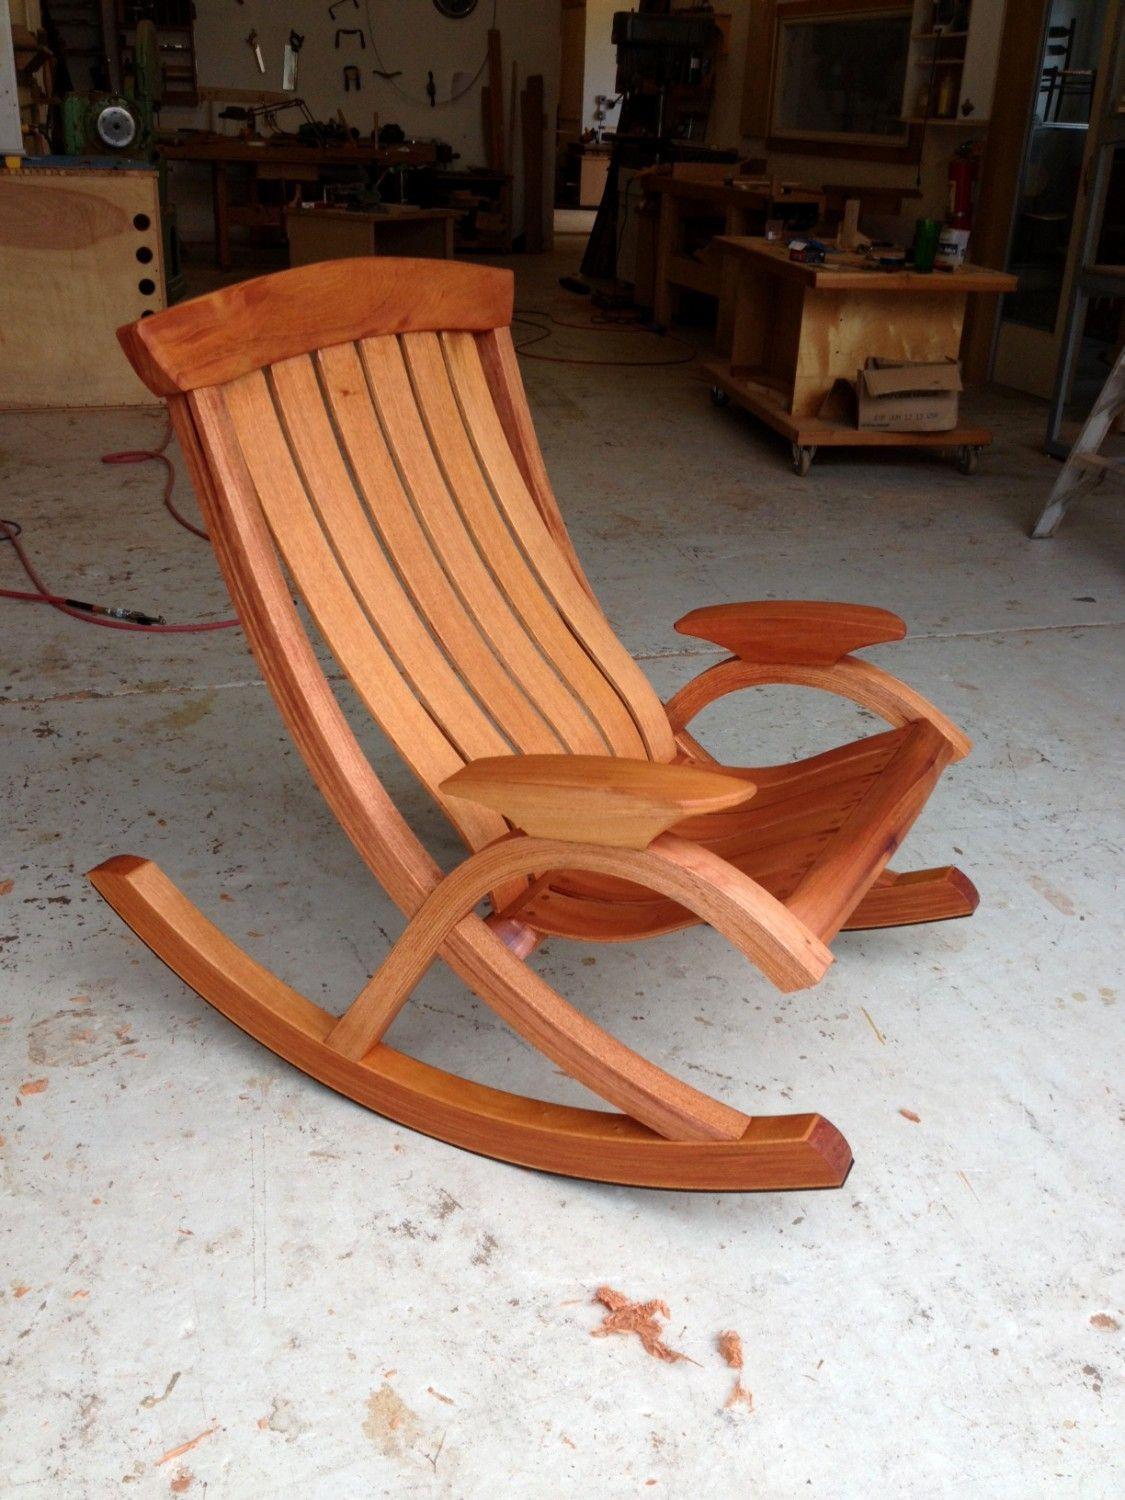 Top 10 Easy Woodworking Projects To Make And Sell Dis Mekan Mobilyalari